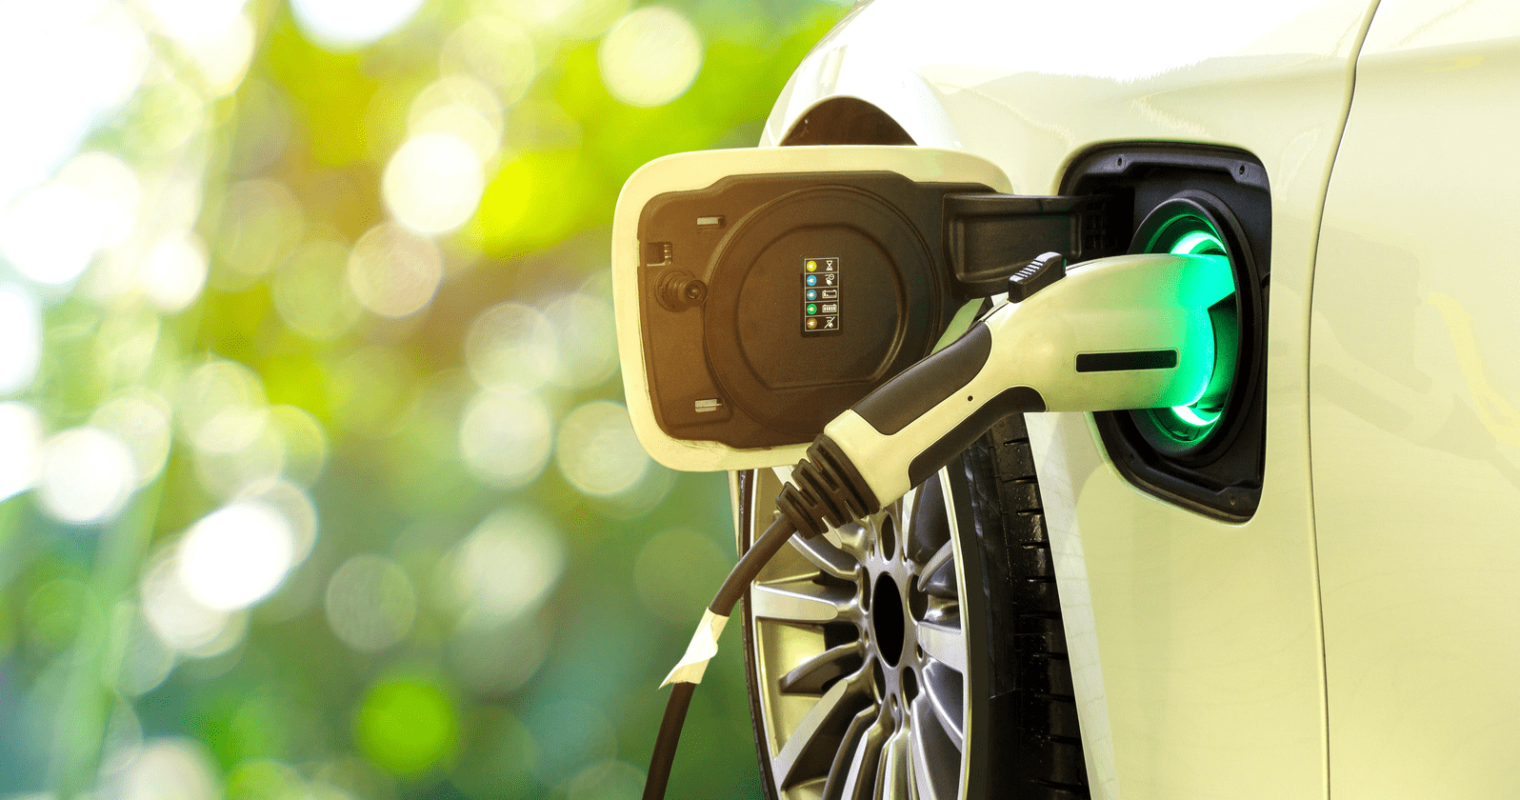 Google Maps Adds Locations of Electric Vehicle Charging Stations